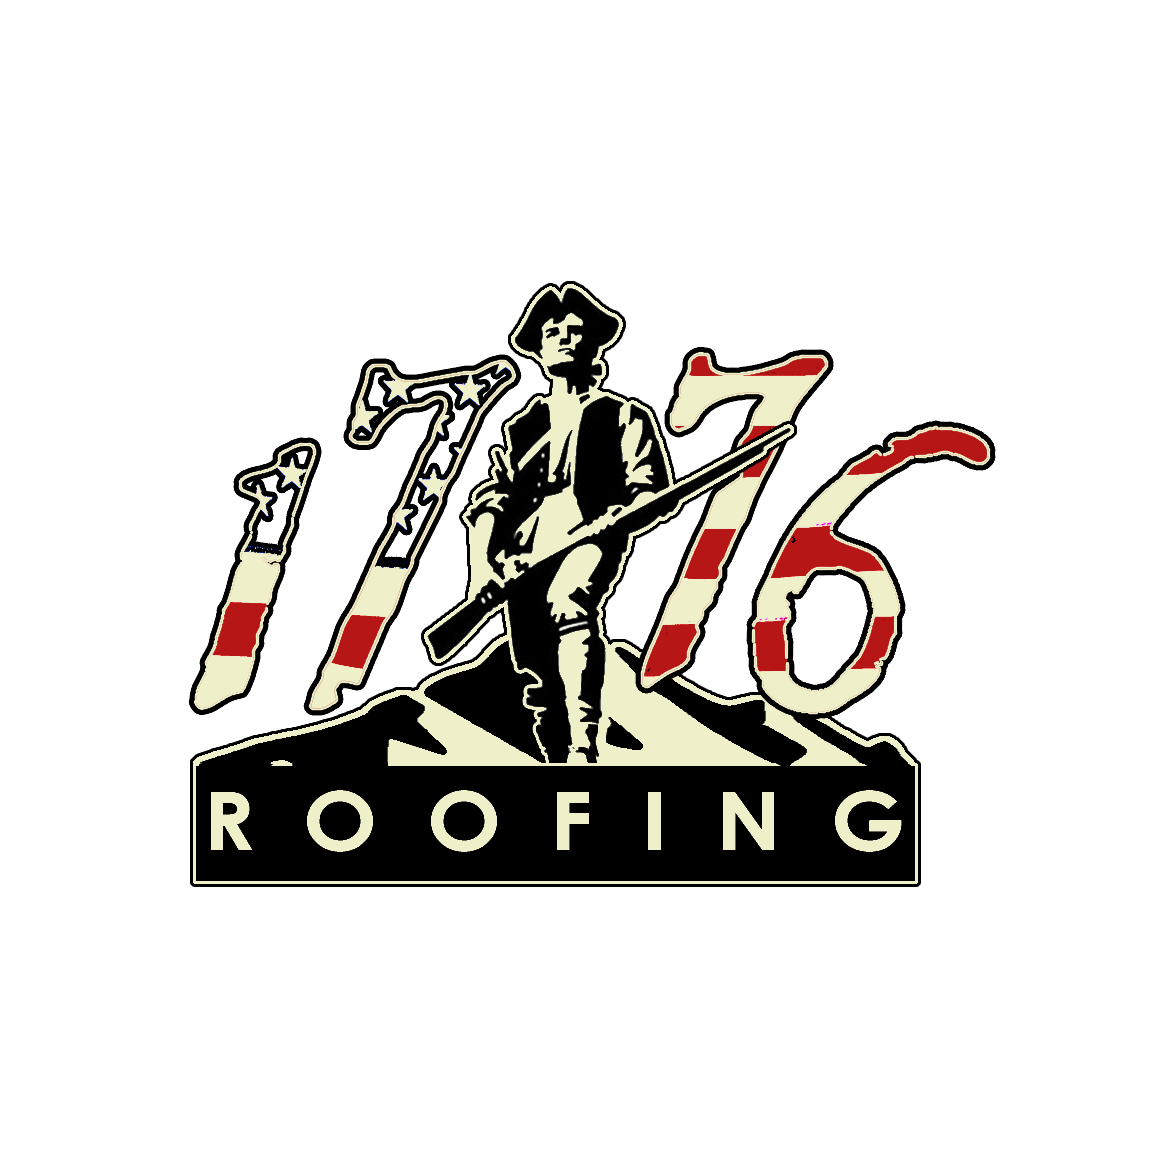 1776 Roofing